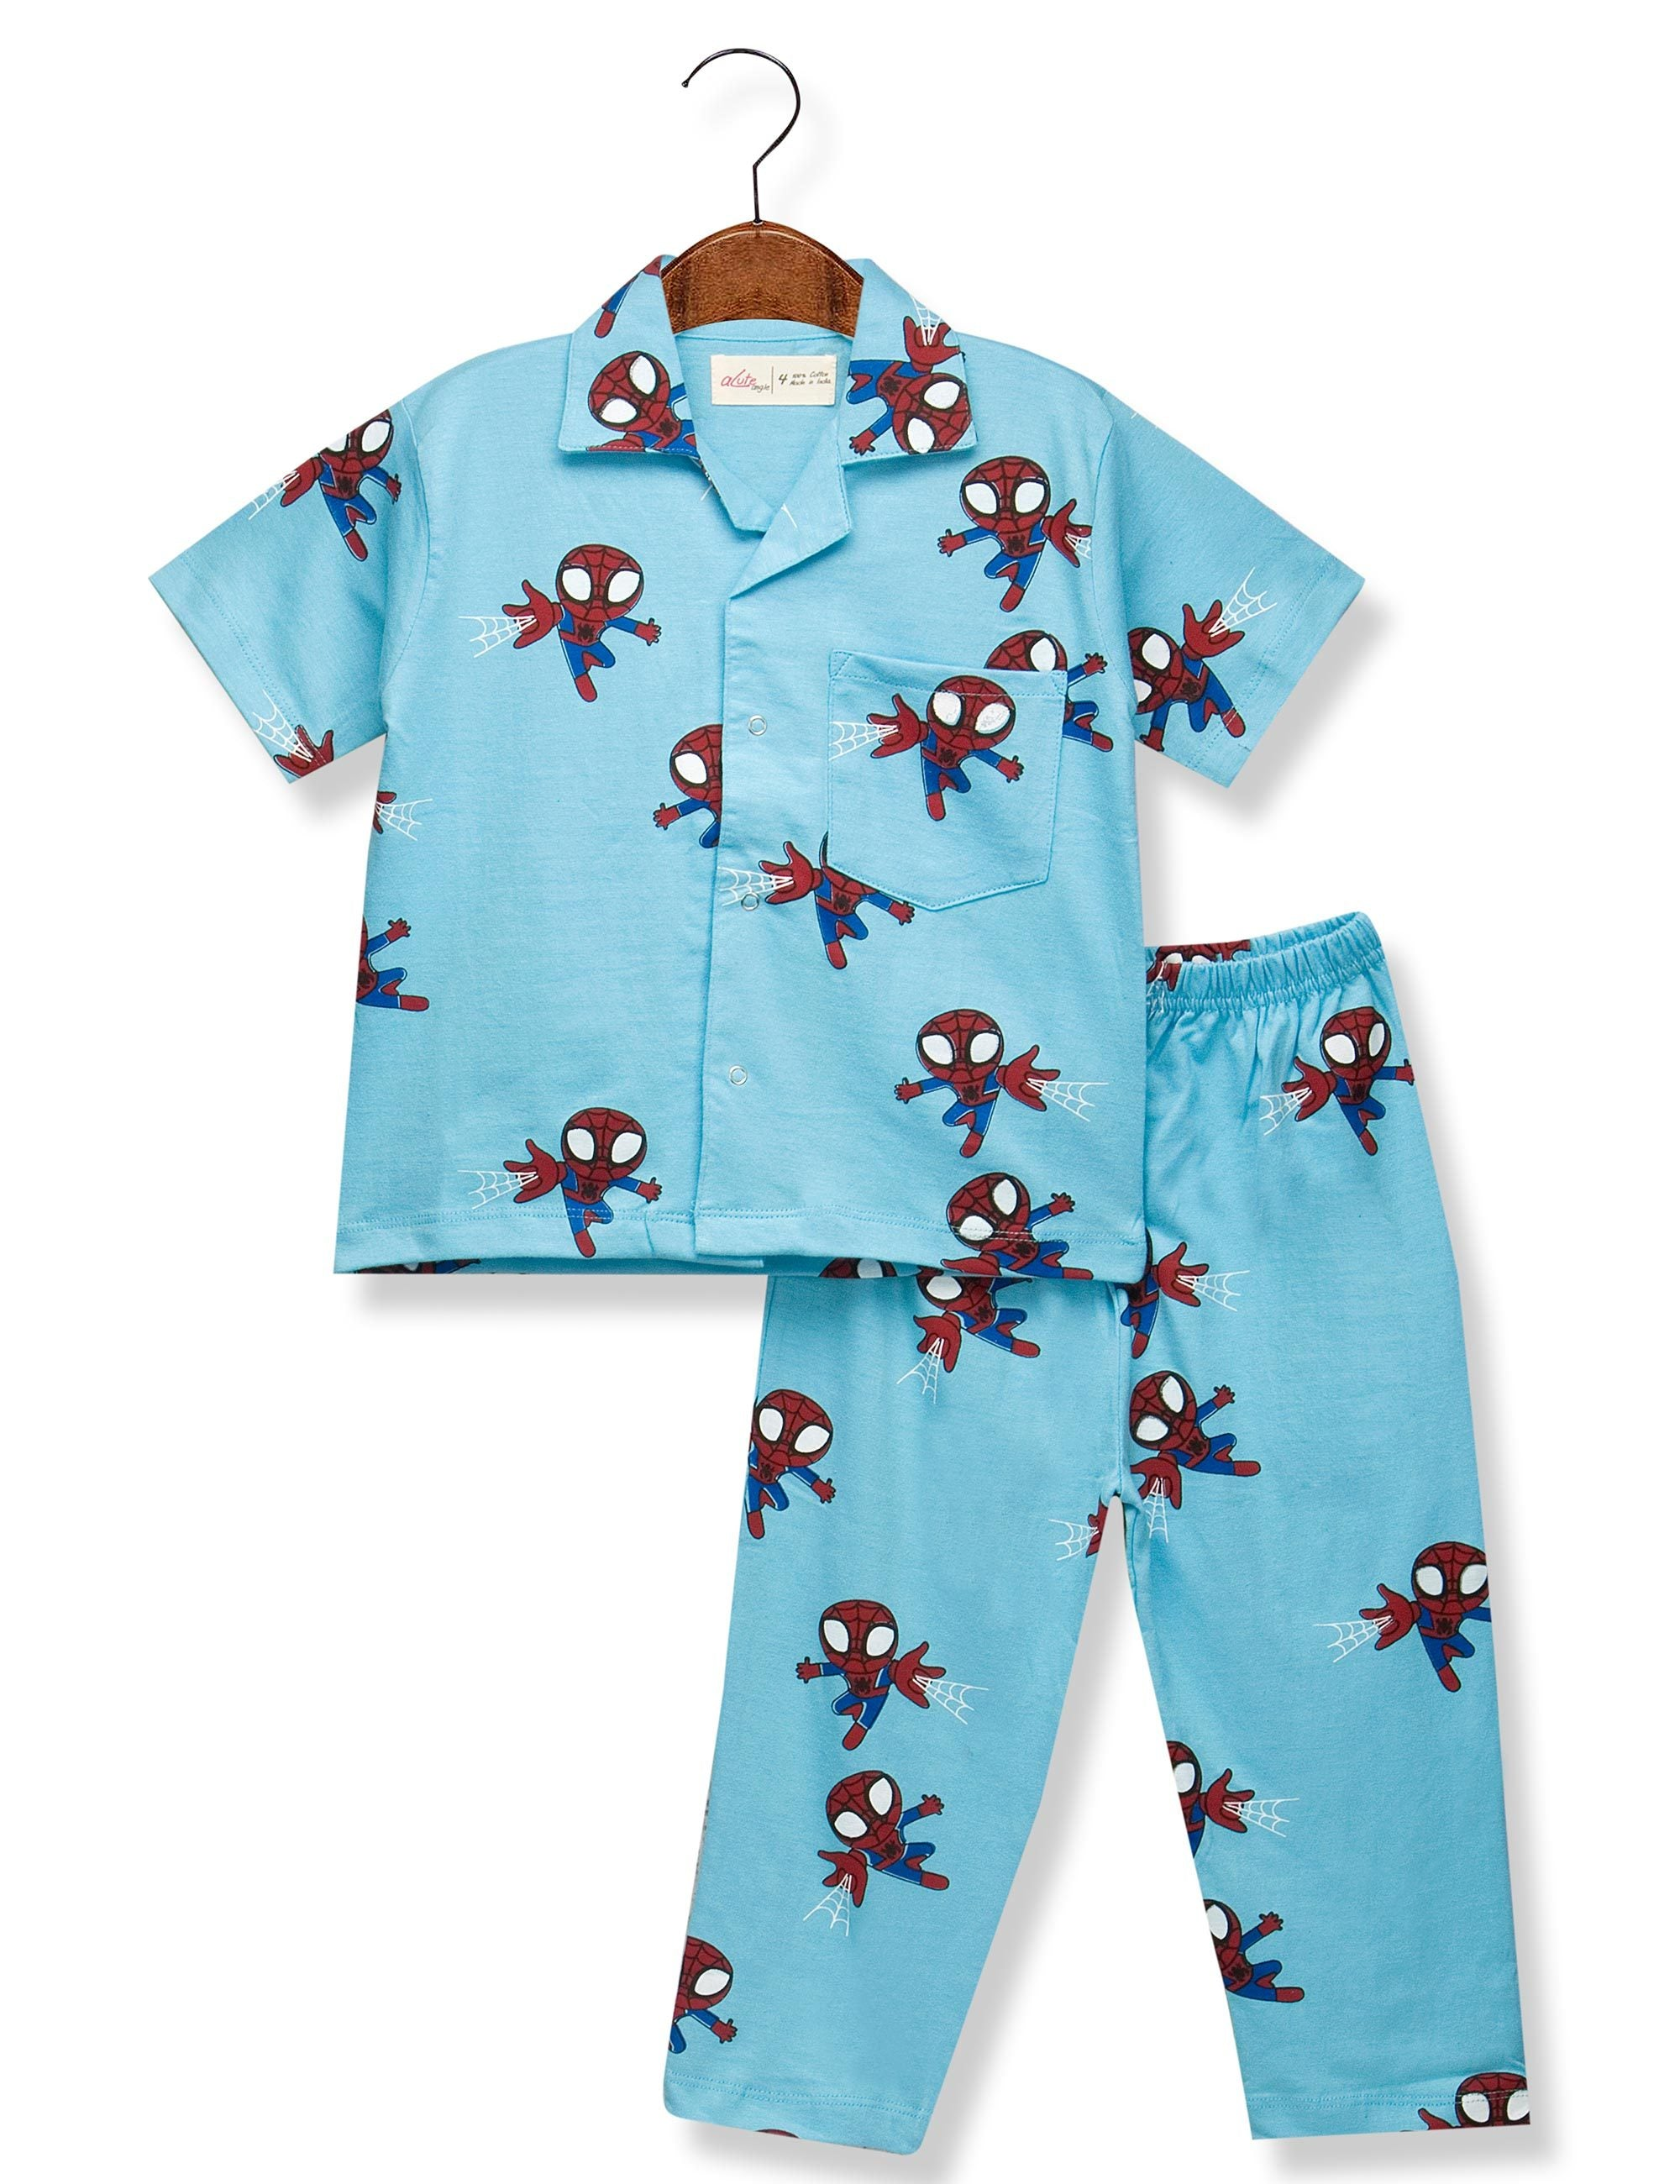 Printed Spider Night Suit for Boys